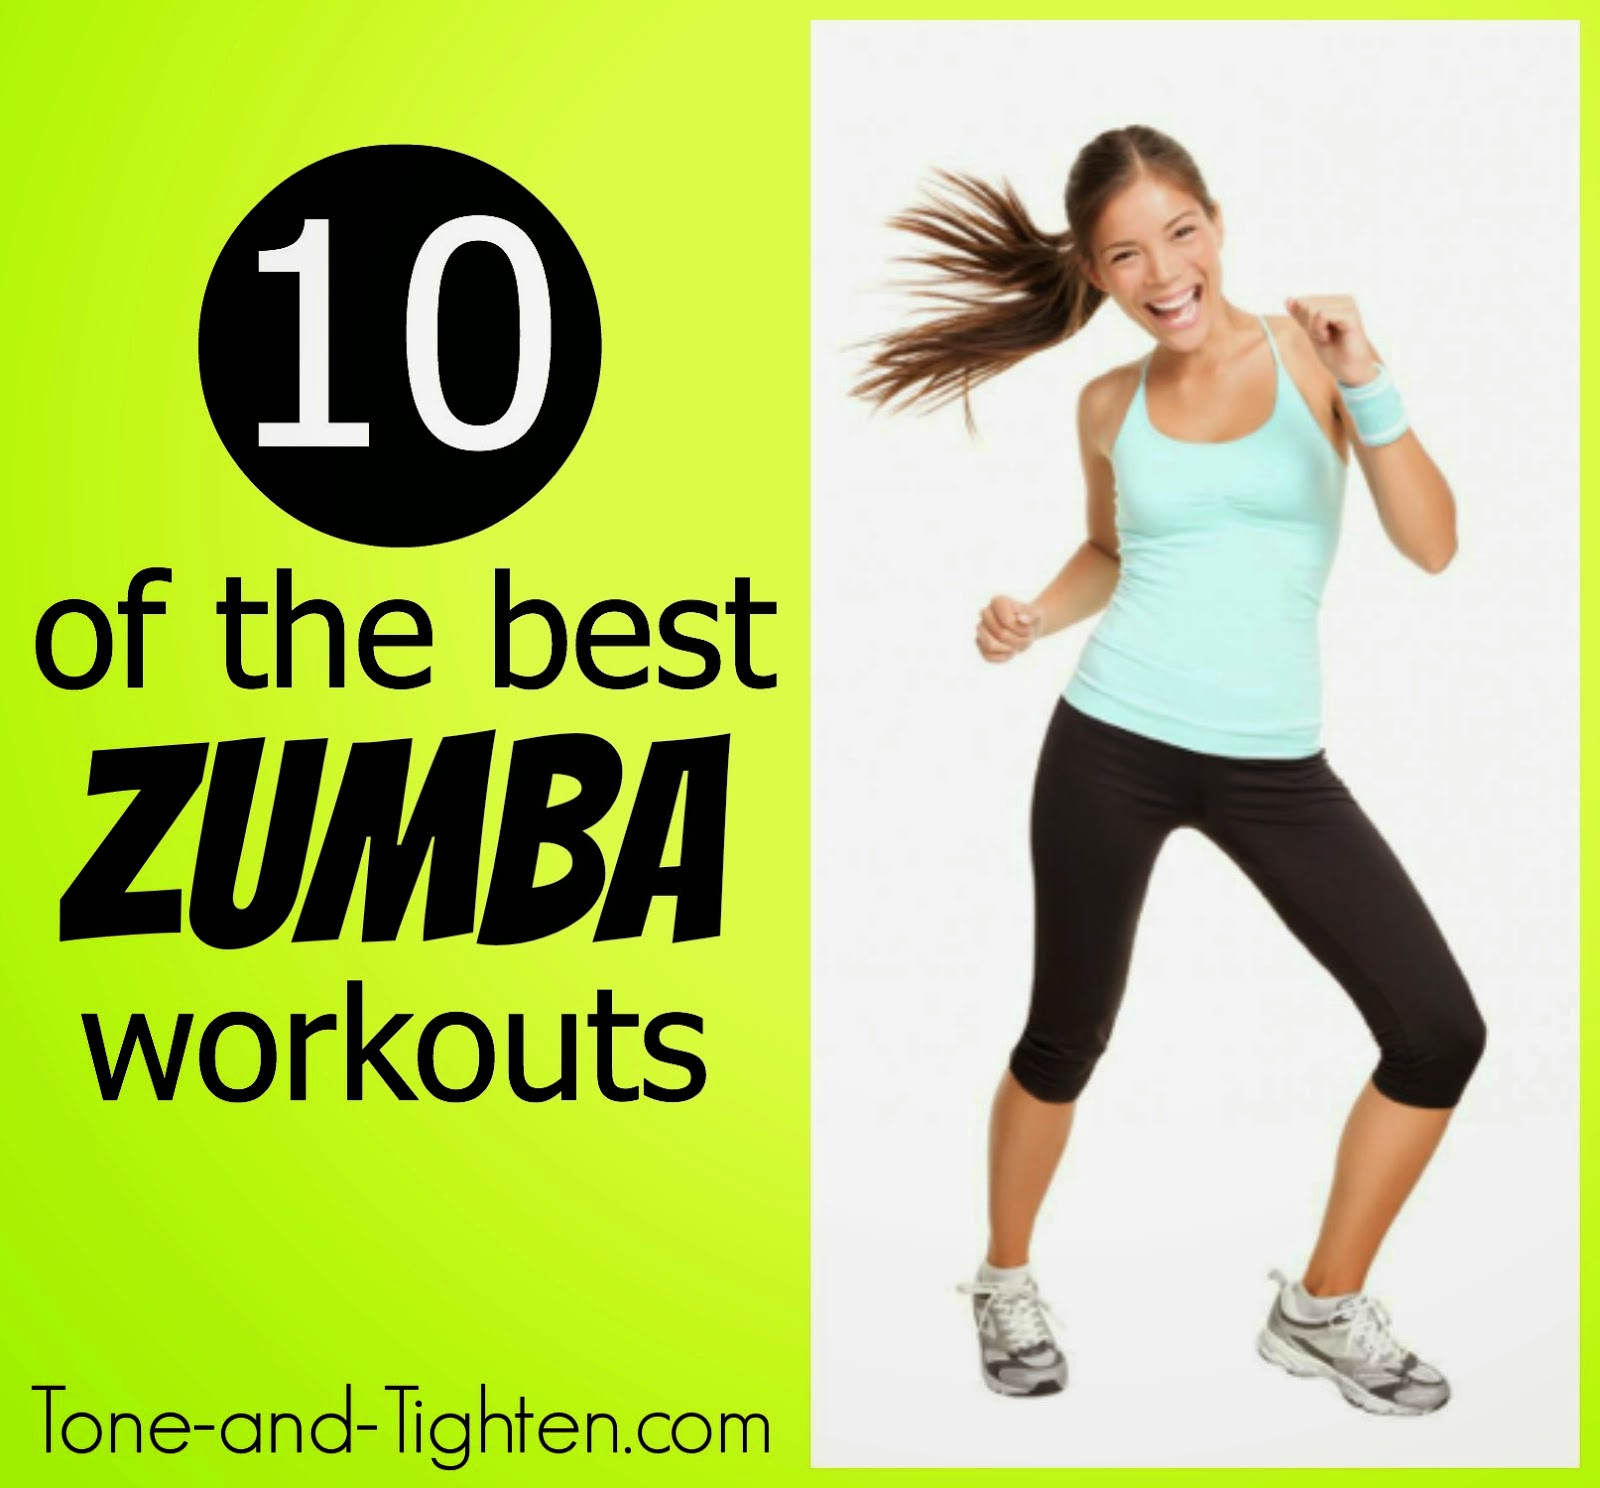 https://tone-and-tighten.com/2014/03/10-of-the-best-free-zumba-full-length-video-workouts-plus-instructional-video.html